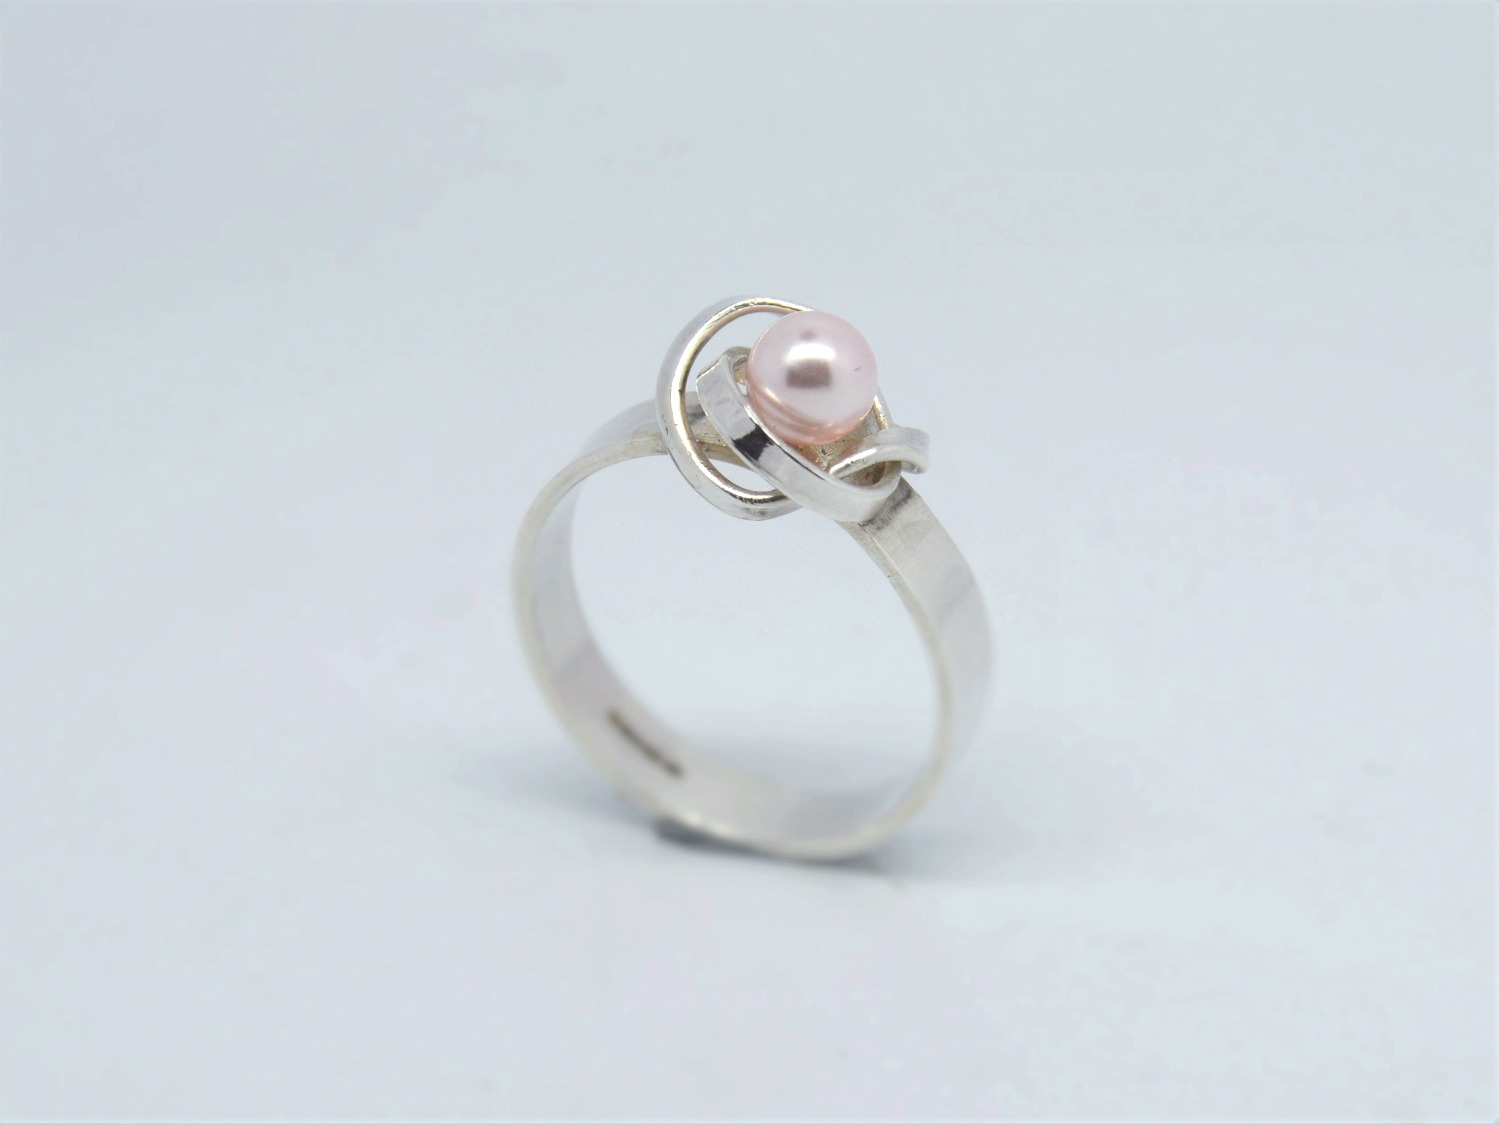 Silver ring with pink pearl